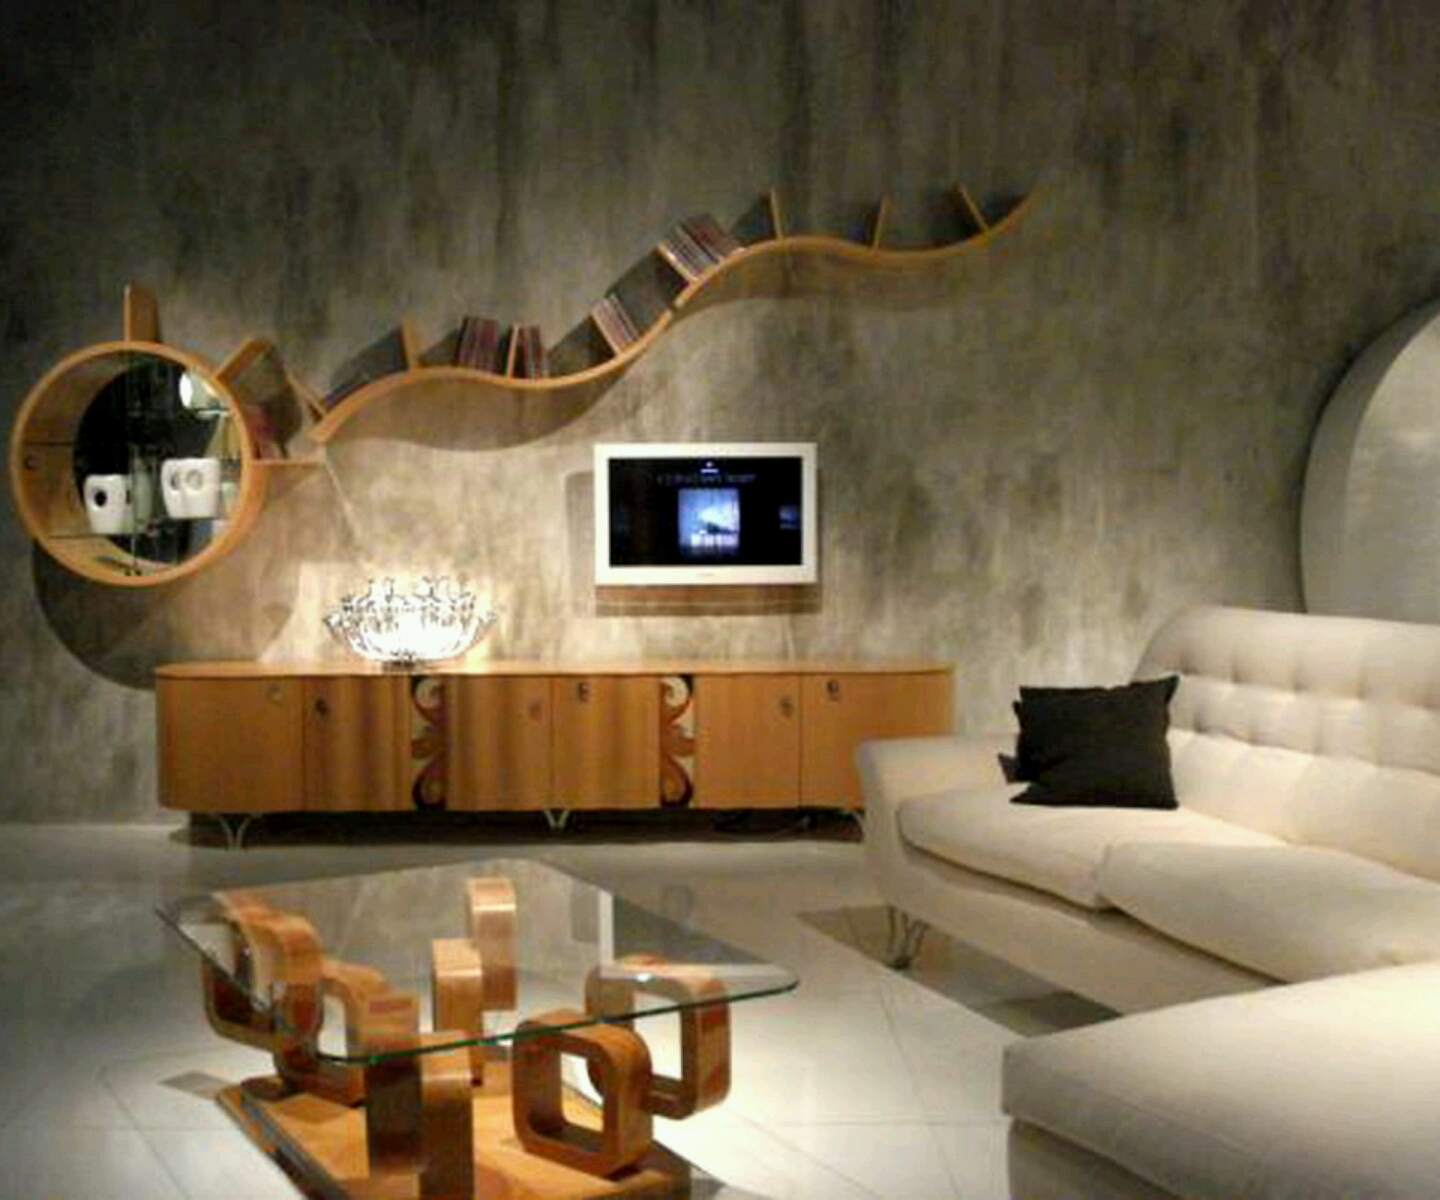 Living things and non living things do share many similarities, but water is not a living thing. New home designs latest.: Modern living room designs ideas.